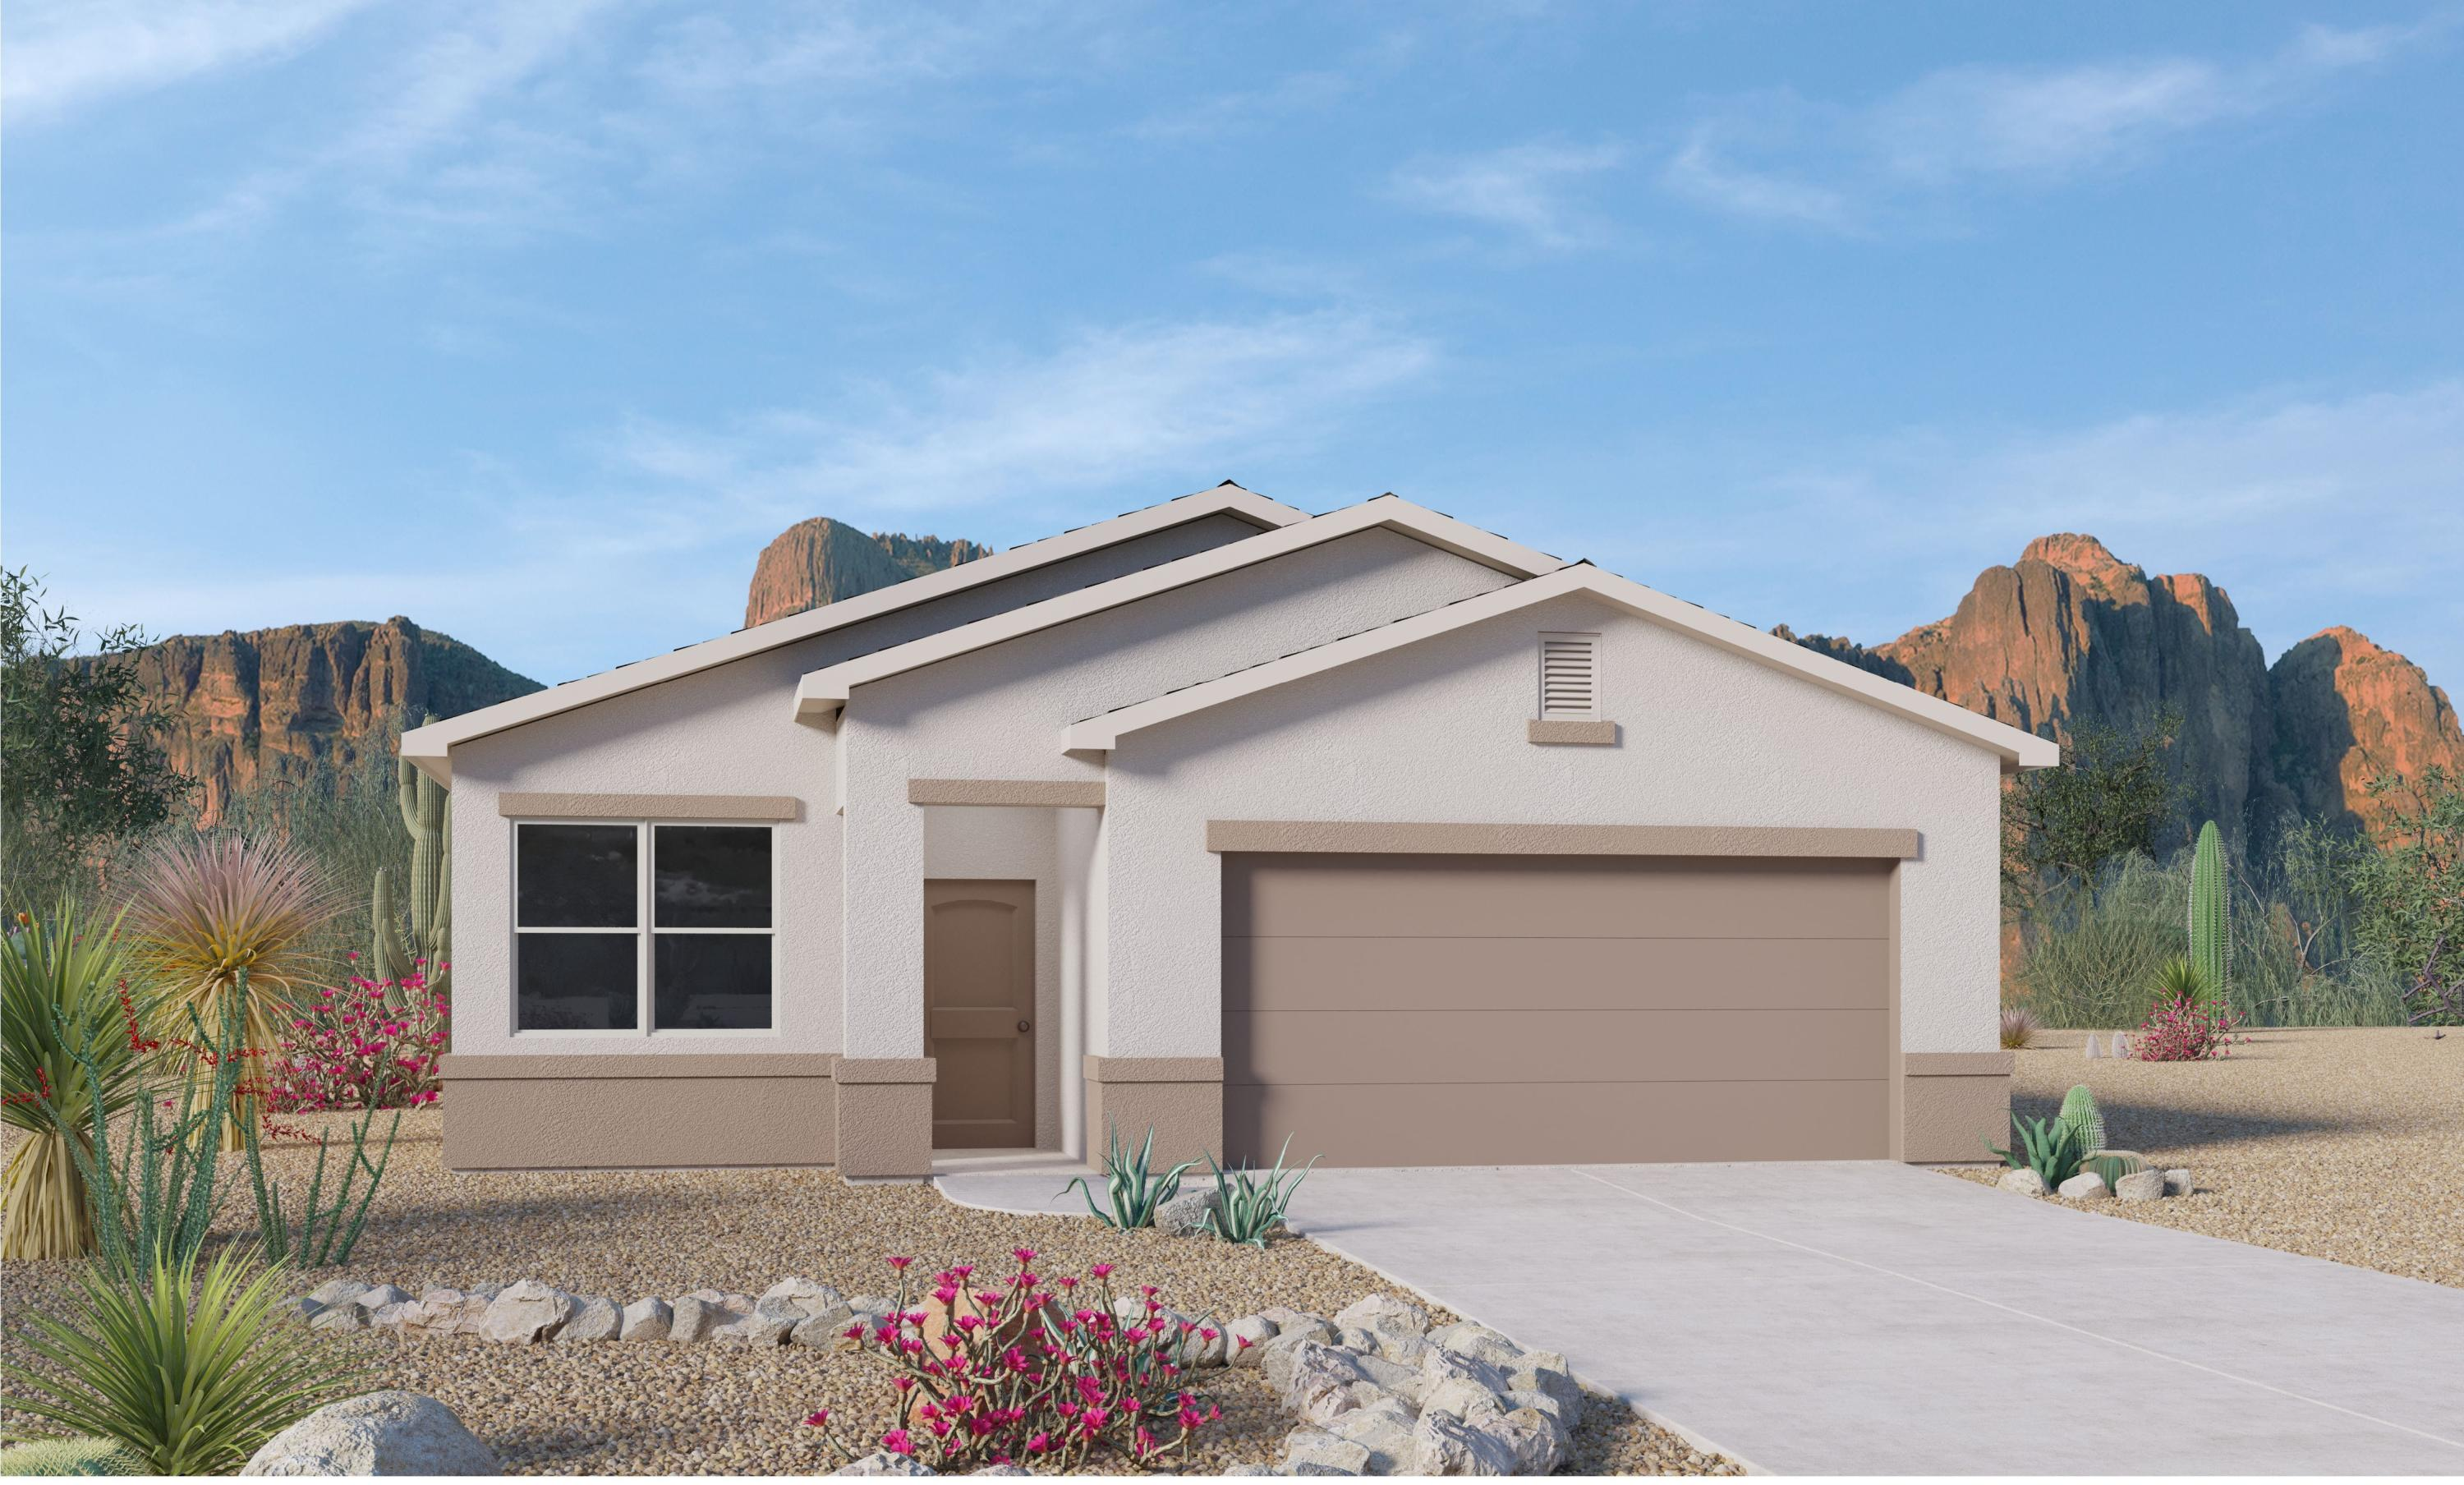 This Brand New  Jemez floorplan is in convenient Solcito Neighborhood. This ''SMART'' home has an open floor plan with plenty of natural light. The kitchen is the heart of this home with a large granite topped island & plenty of cabinet & pantry space.  18 x 18'' floor tiles. The great room has a sliding door that overlooks the covered patio area. 2 Spacious bedrooms are located next to the full bathroom and utility room. The Owner's Suite on opposite side has raised ceilings, with two windows for extra light. Master bath is complete with an over-sized walk-in closet and extended shower. Energy efficient, this home estimate completion in October. Photos are of Jemez Model home,